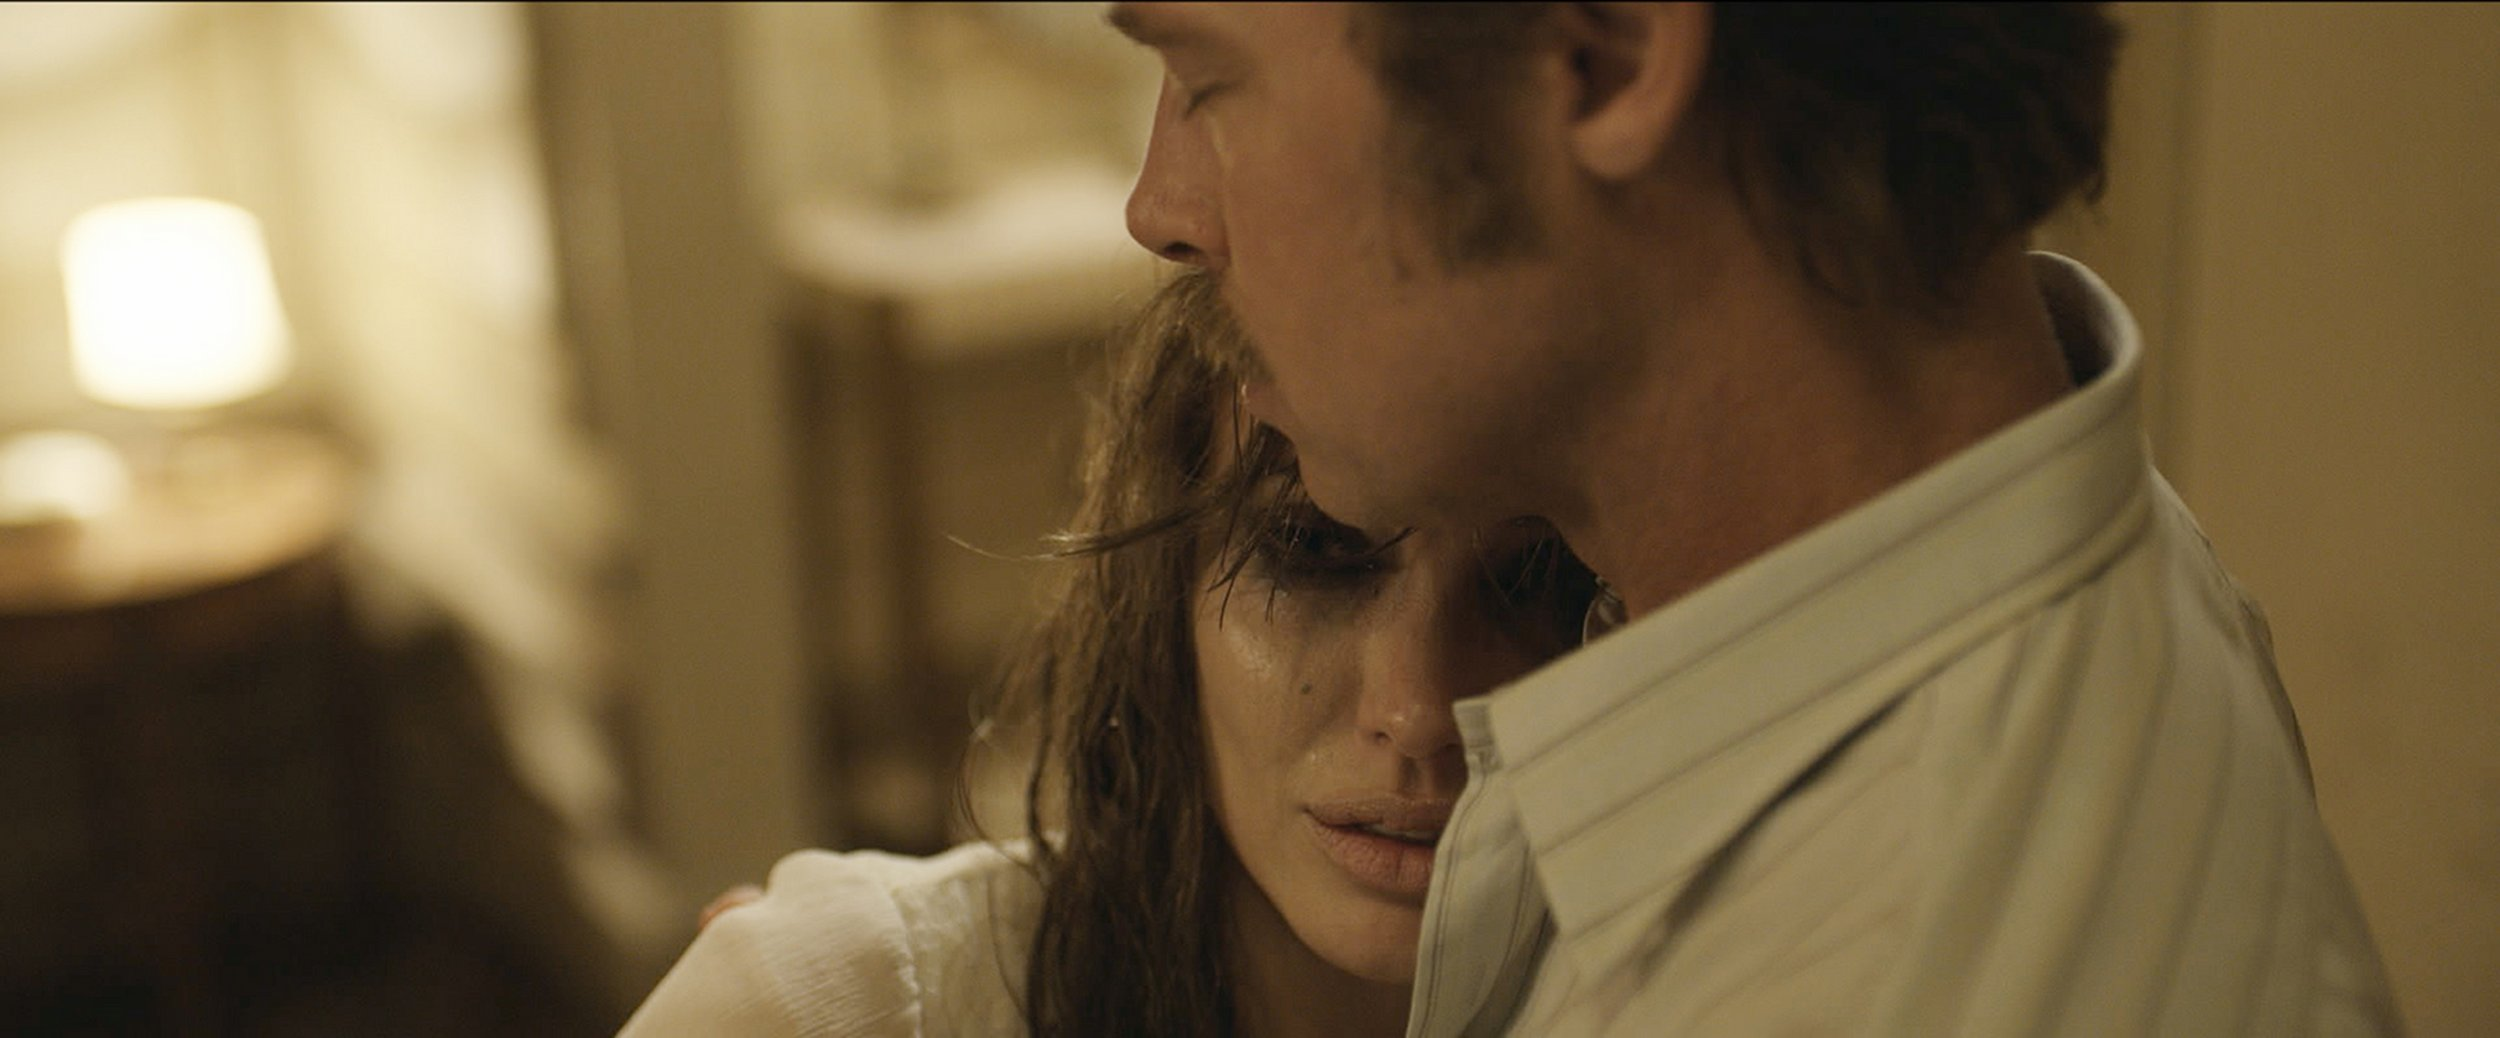 By The Sea gets a release date and new Still of Brad Pitt and Angelina Jolie